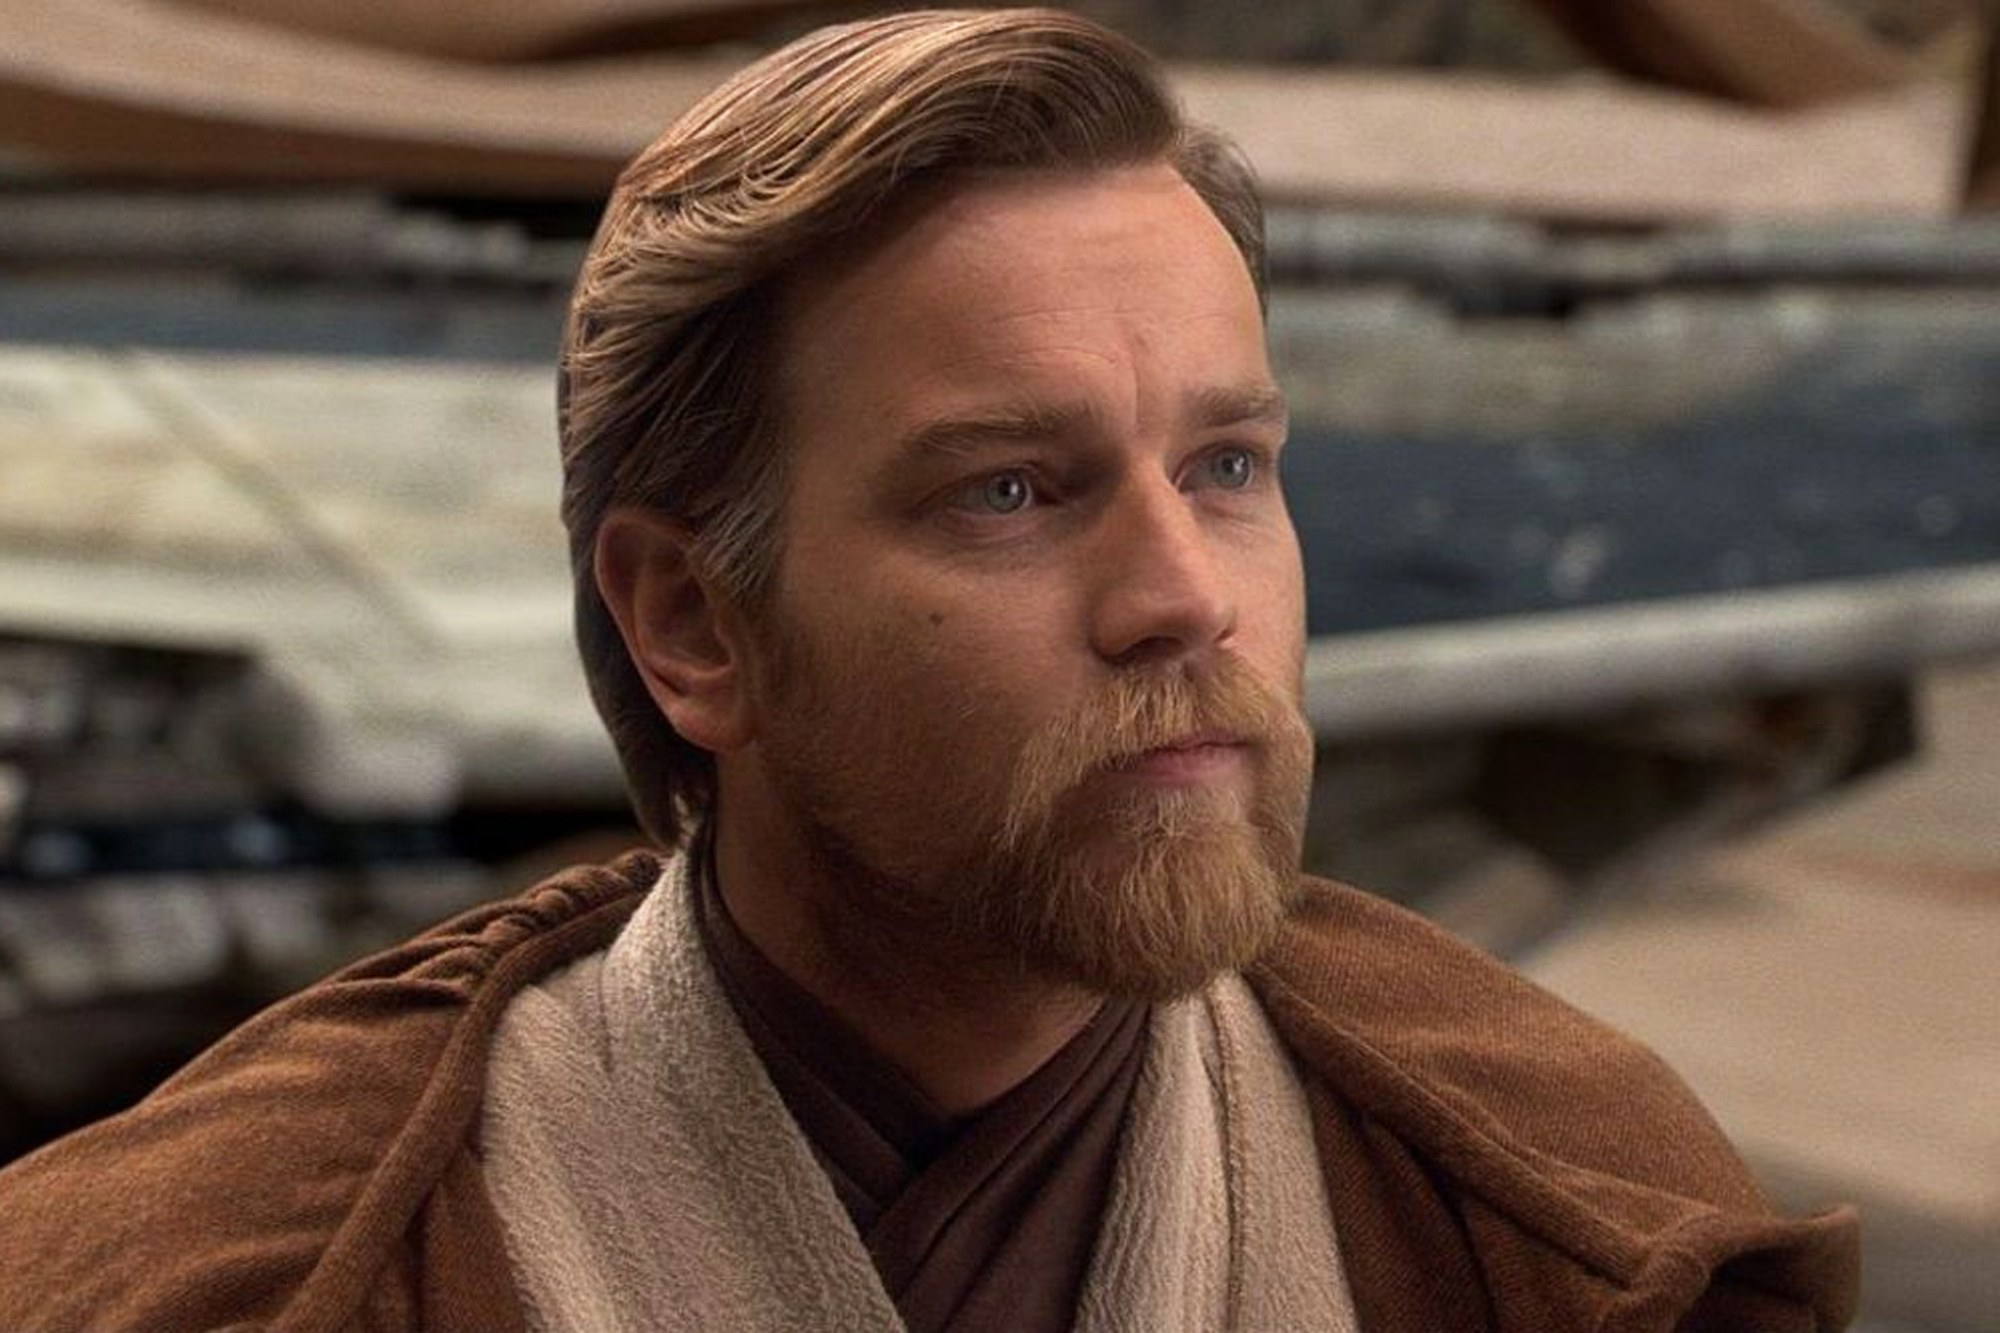 Disney+ may become home to a new 'Star Wars' series with Ewan McGregor